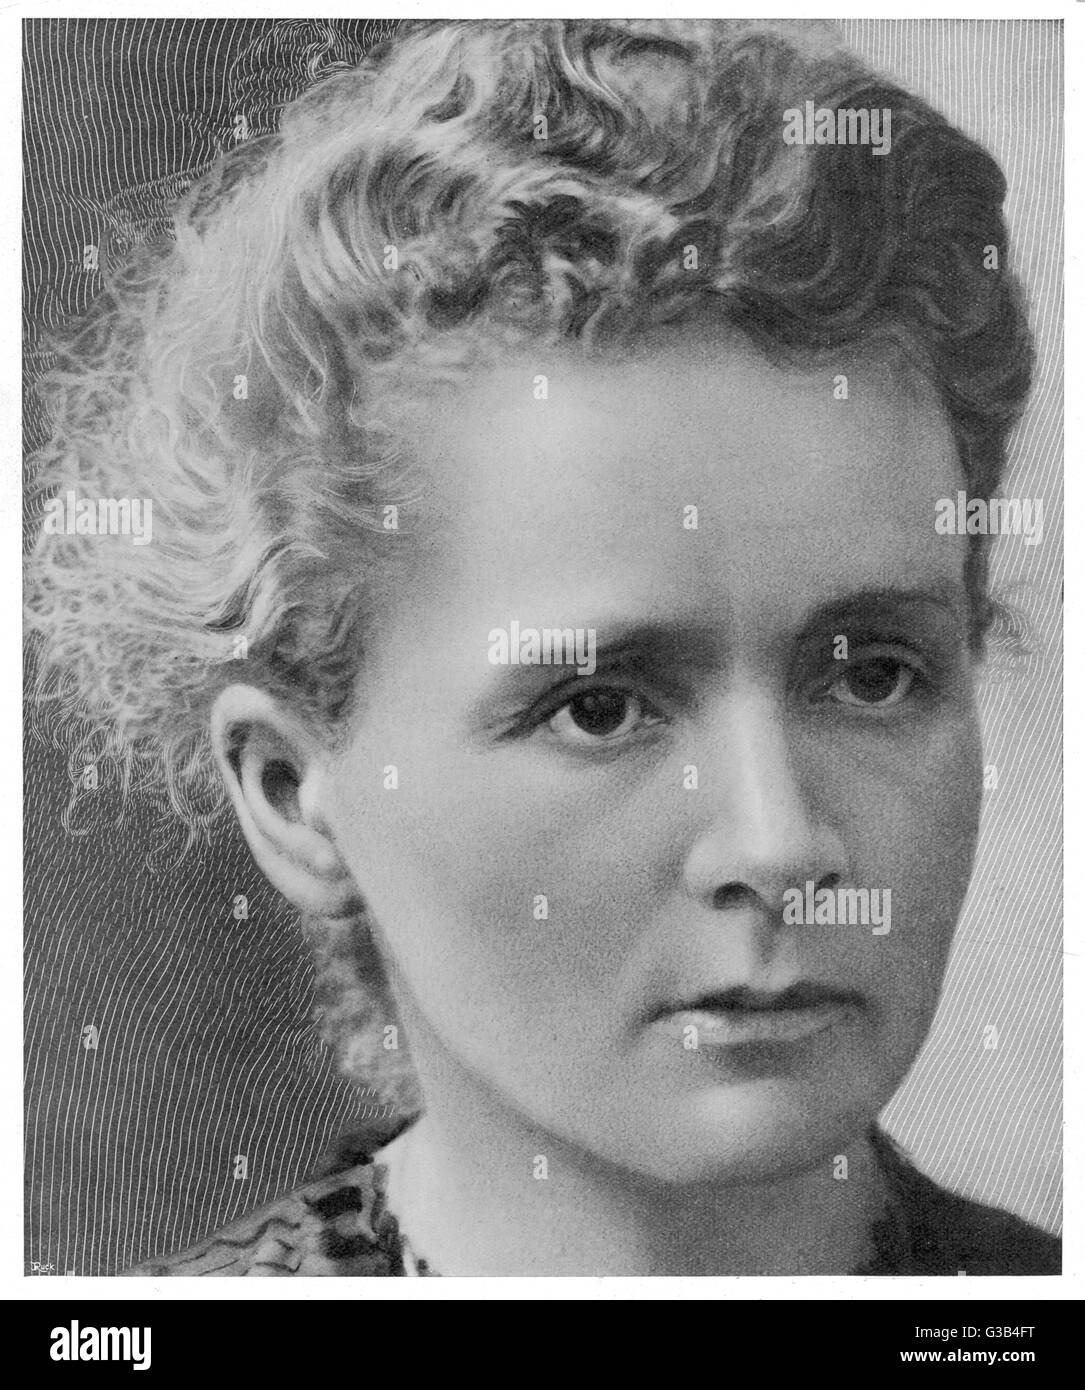 MARIE CURIE featured on page 1  of a women's magazine      1867-1934 - Stock Image